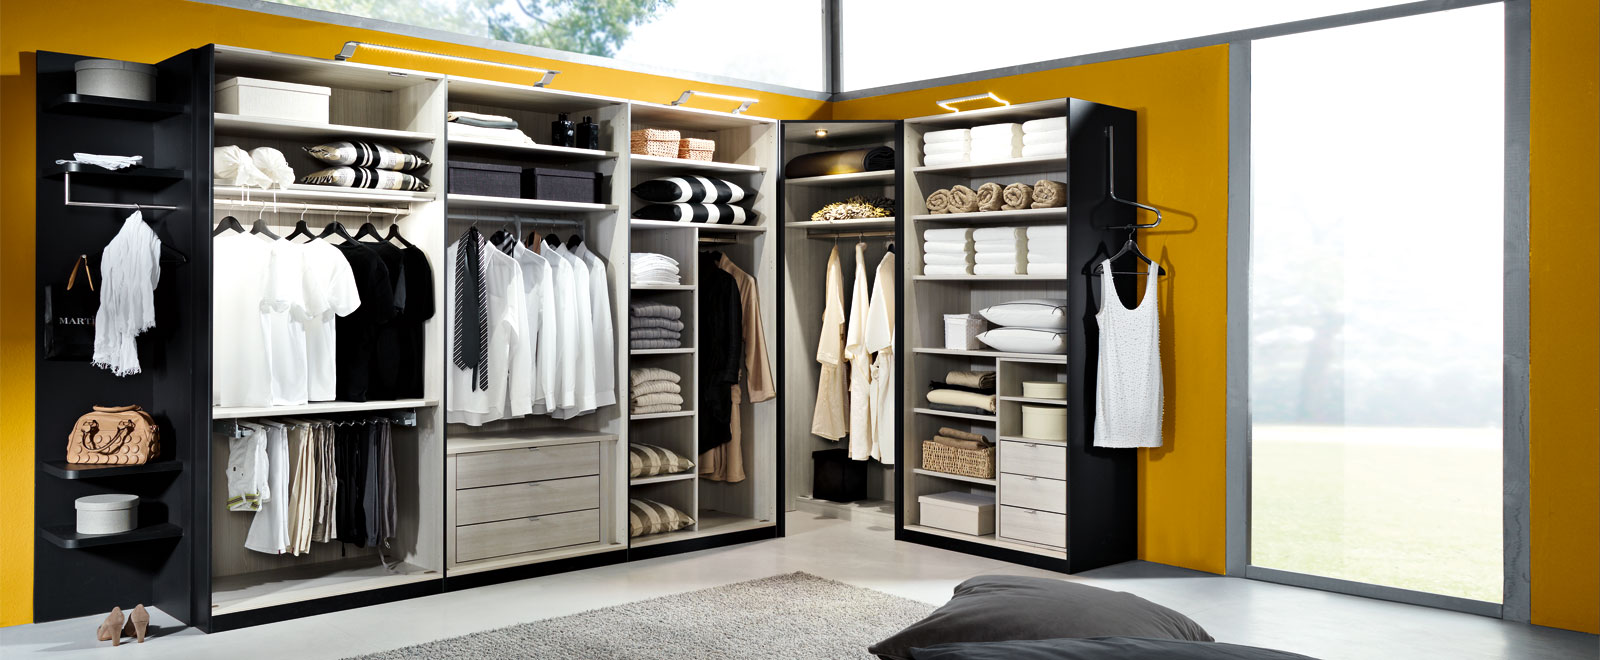 Bedroom furniture wardrobes - The Brand With Great Tradition And A History Of More Than 115 Years Has Specialized In Producing Furniture For Master Bedrooms Wardrobe Systems And